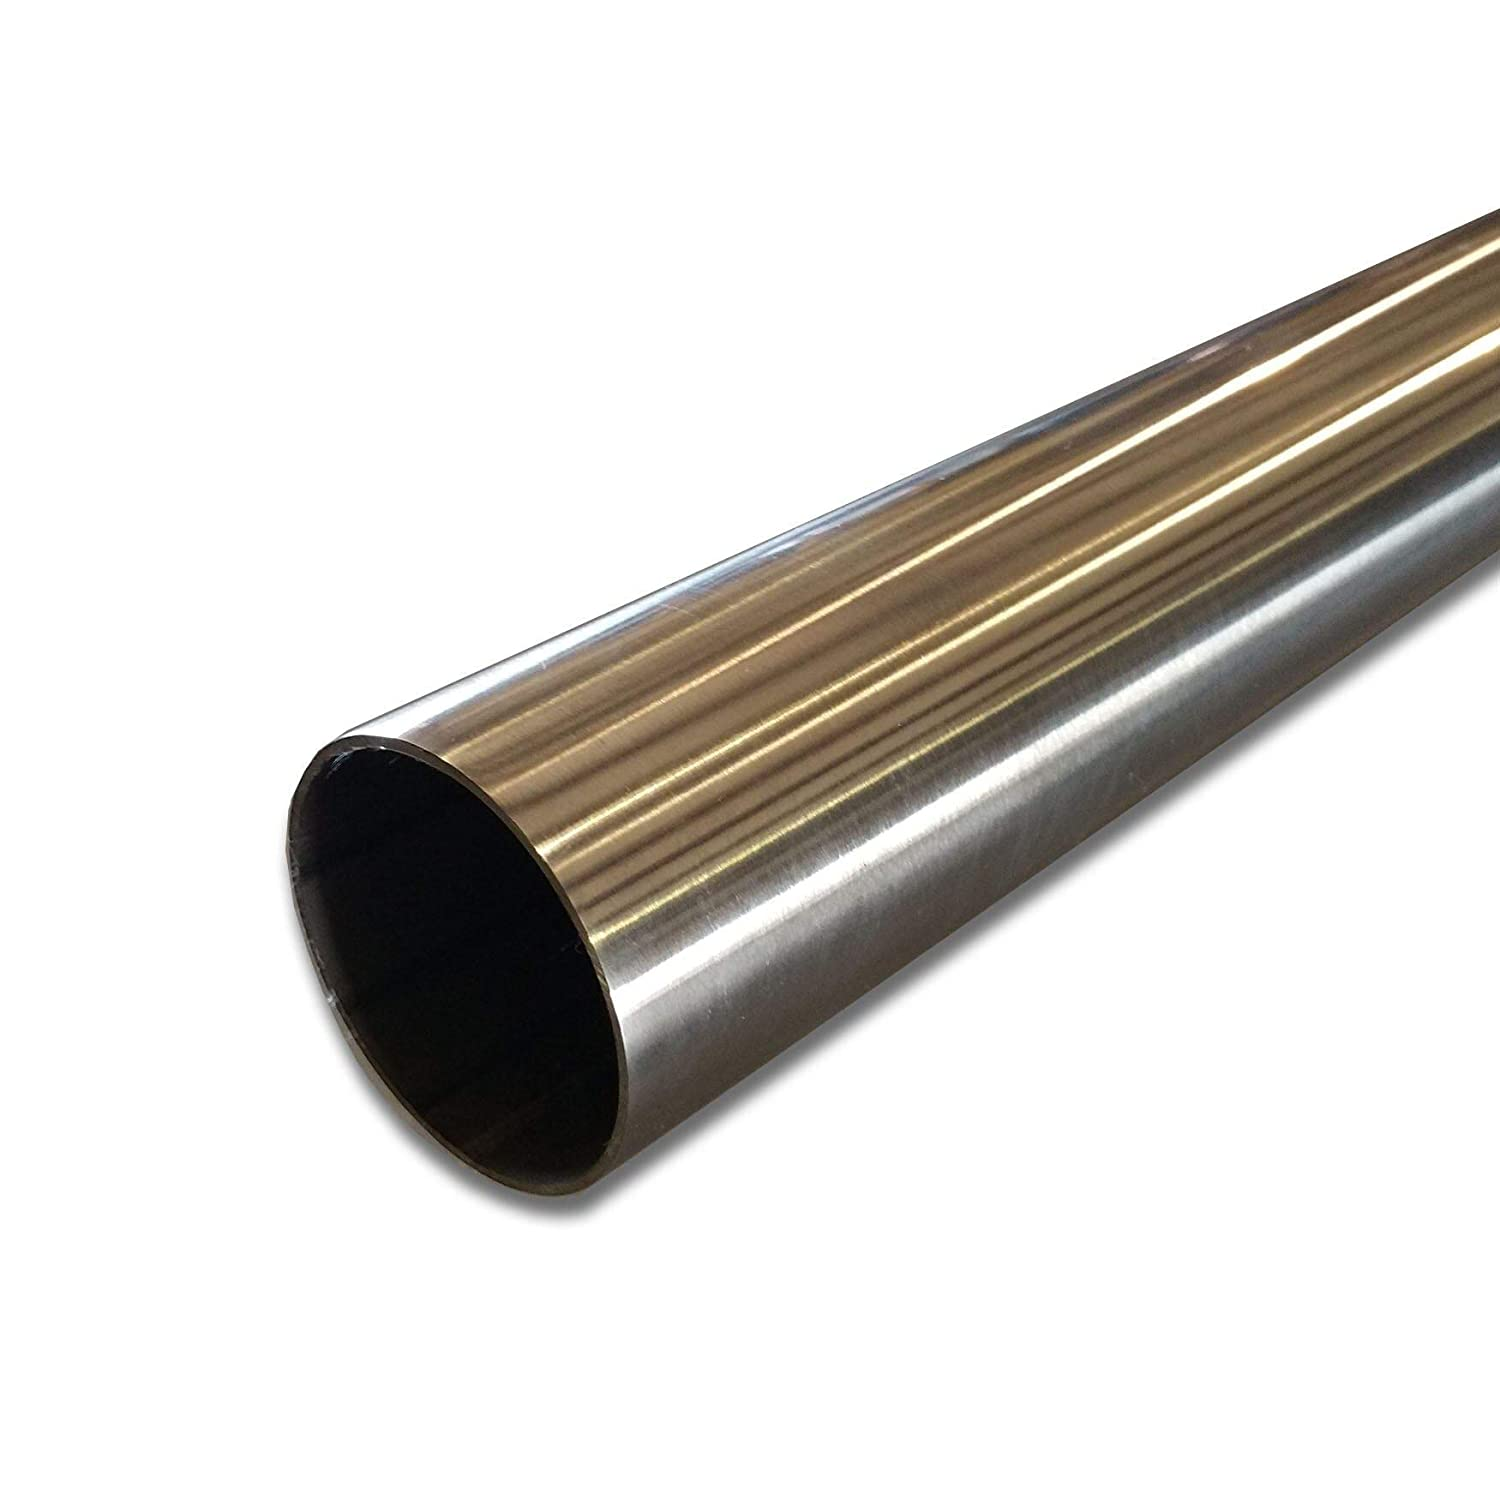 Polished 1-5//8 OD x 0.065 Wall x 72 Long Online Metal Supply 304 Stainless Steel Round Tube